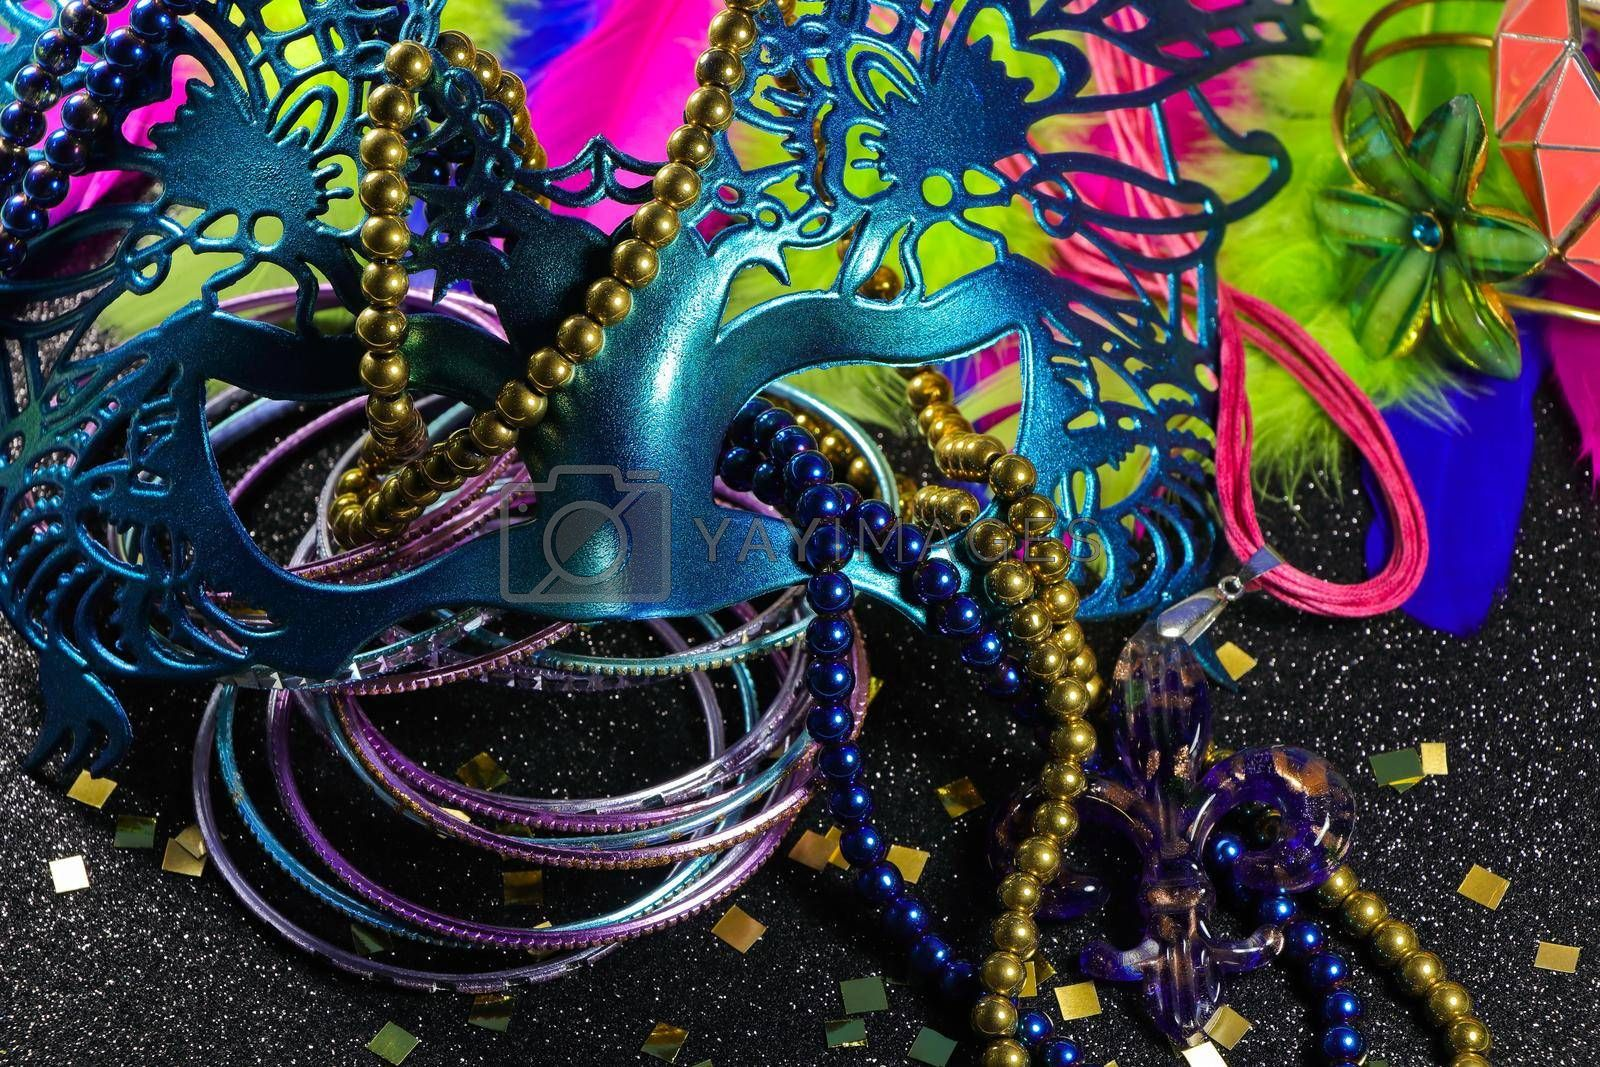 Mardi Gras carnival theme parade mask with jewelry and feathers on textured black